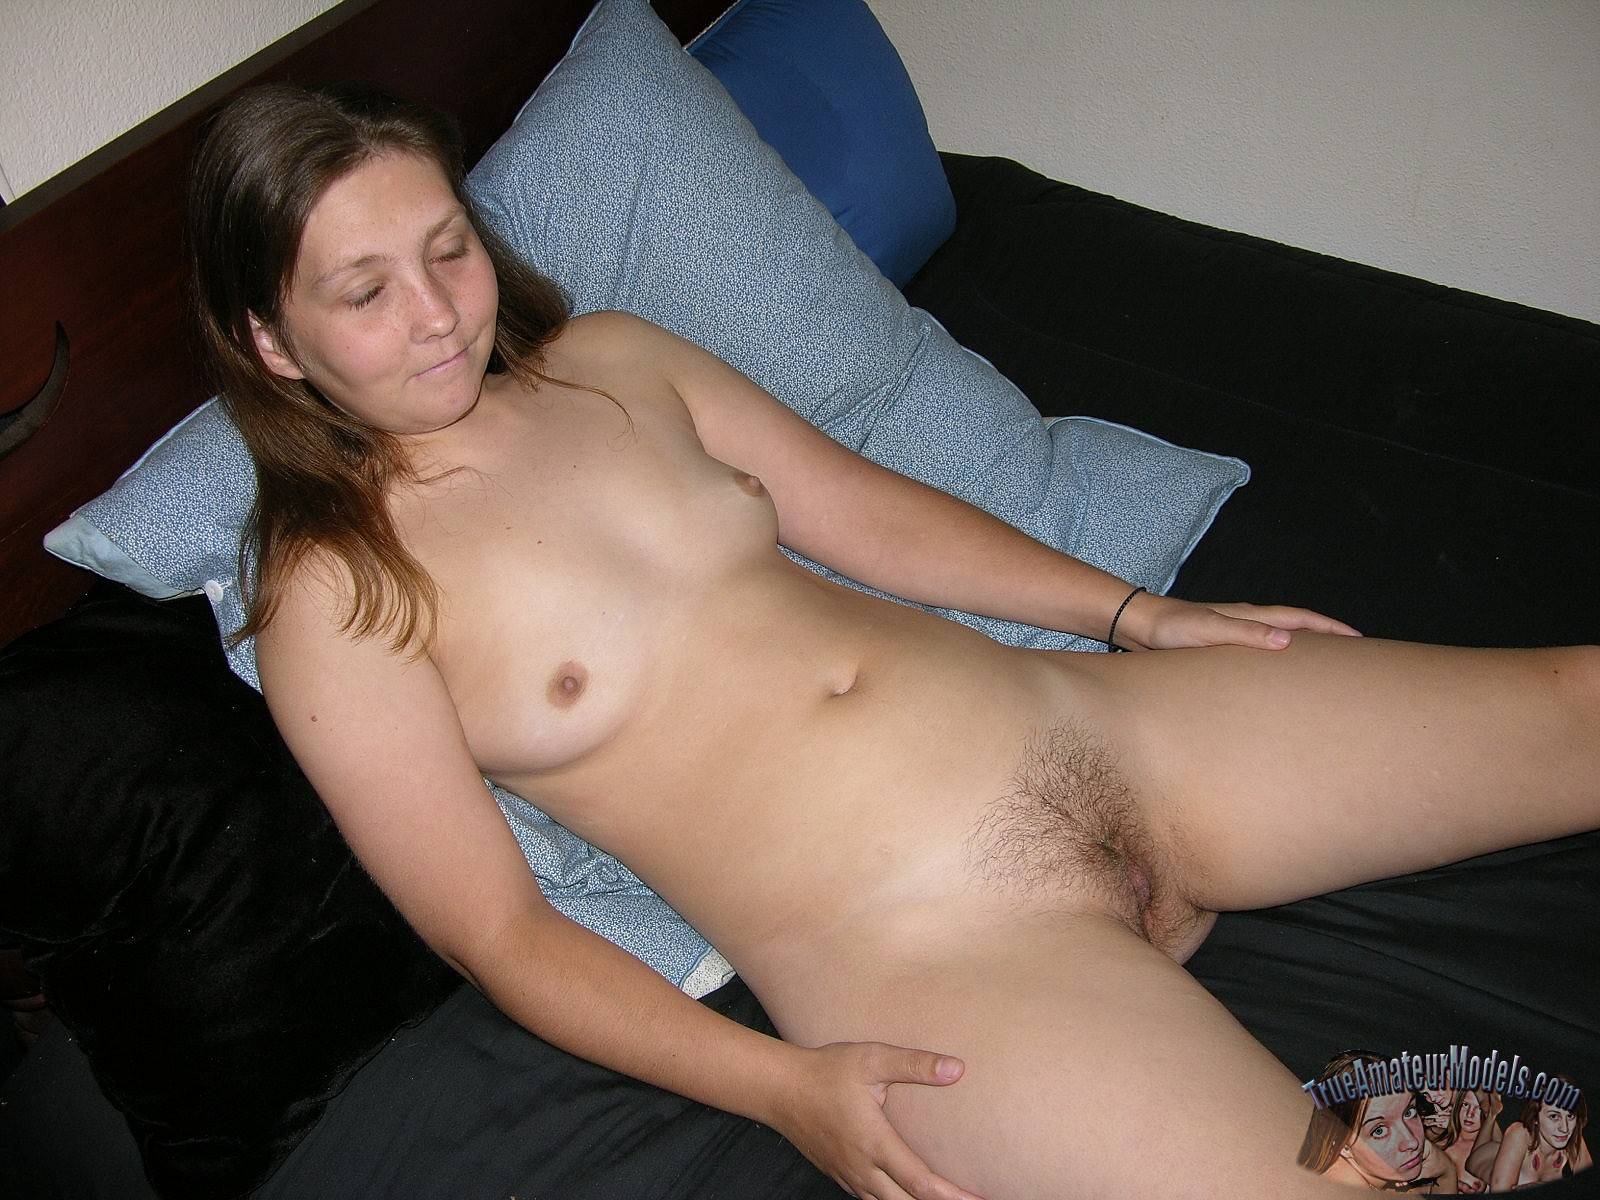 womens pussy pics in wv